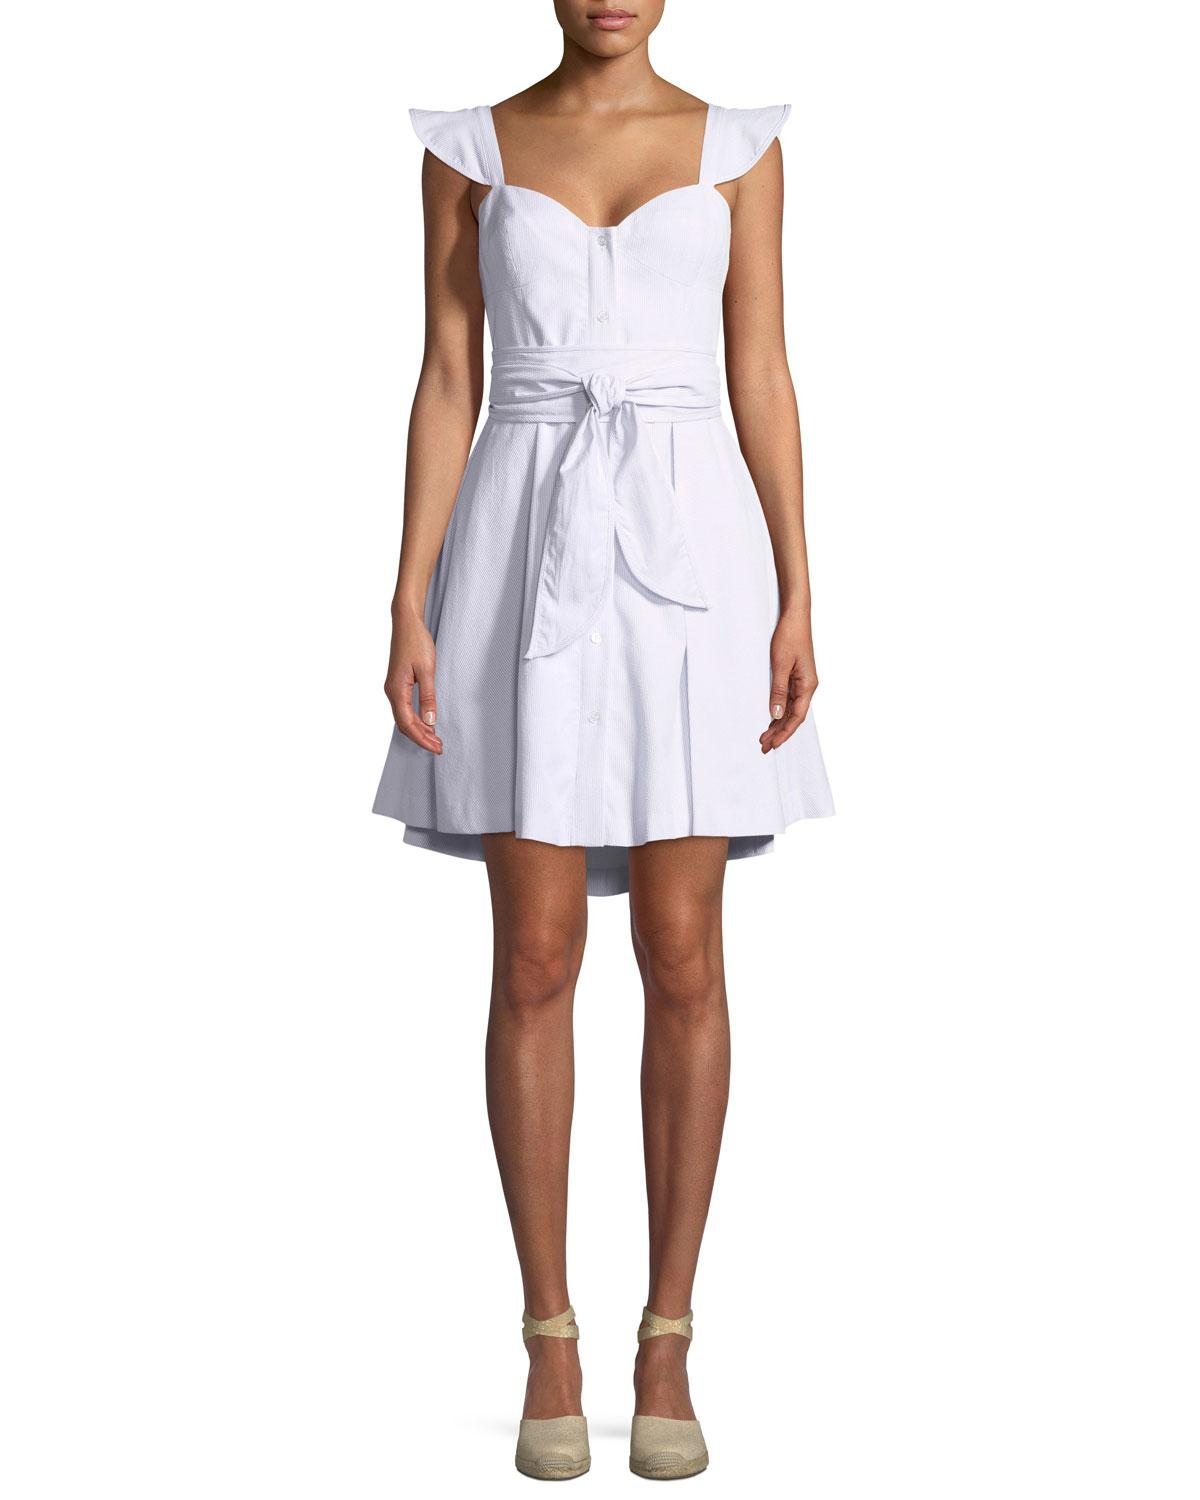 Lyst - MILLY Classic Seersucker Corset Dress in Gray - Save ... a932dc66e